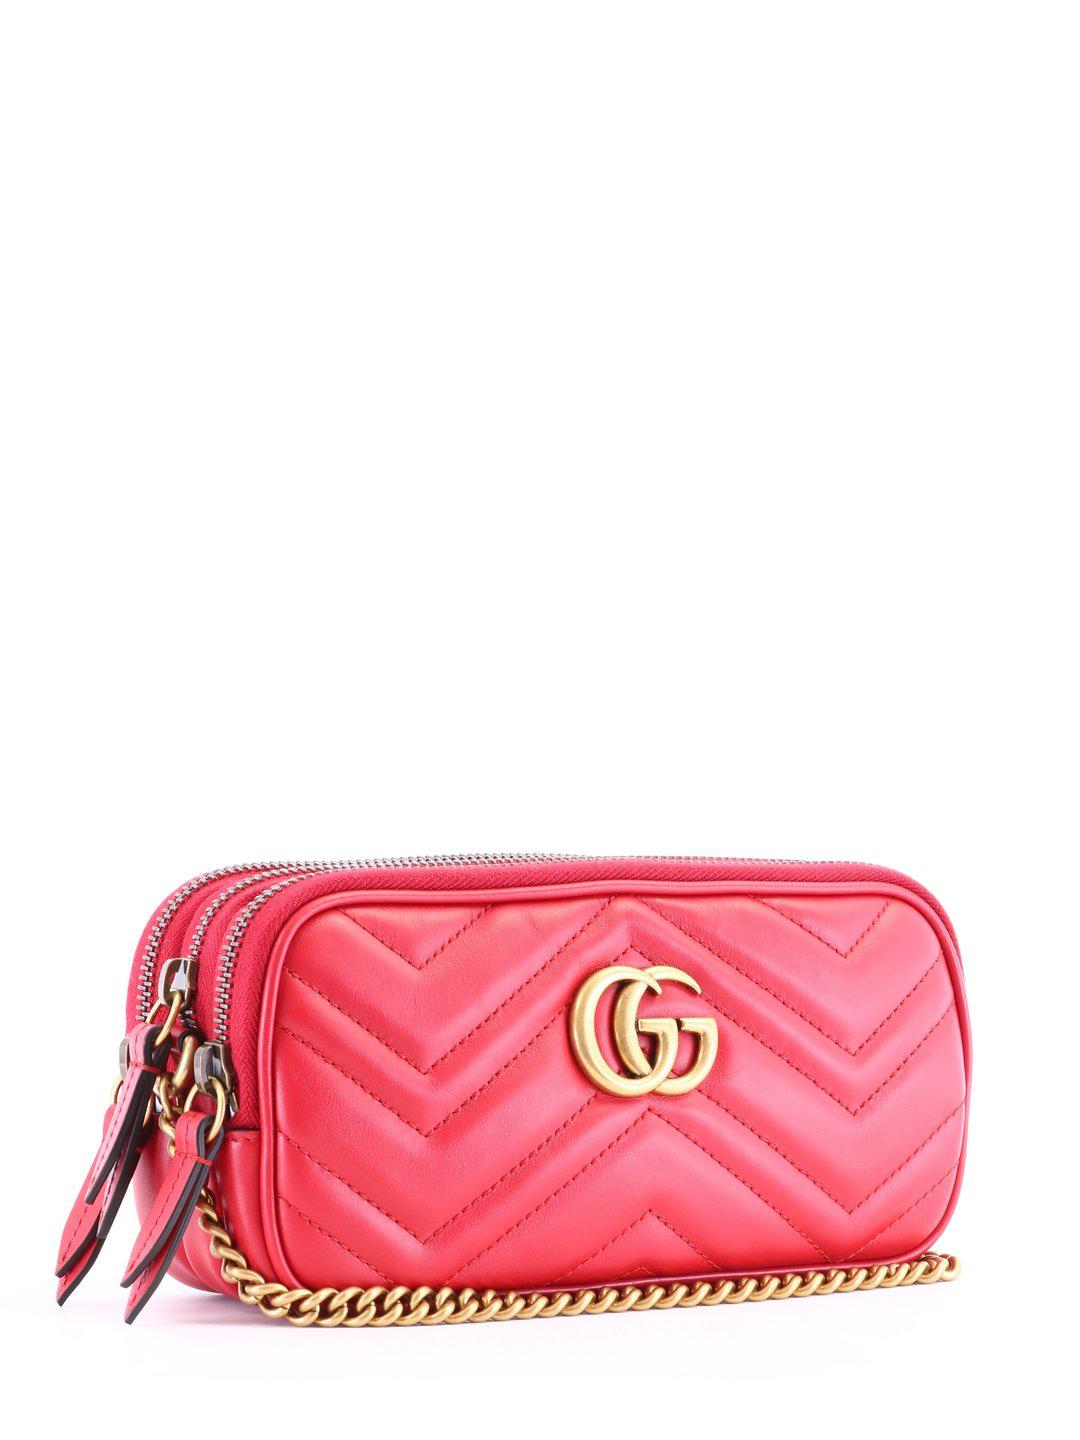 4bd1878b6a6a Lyst - Gucci GG Marmont Chain Strap Bag in Red